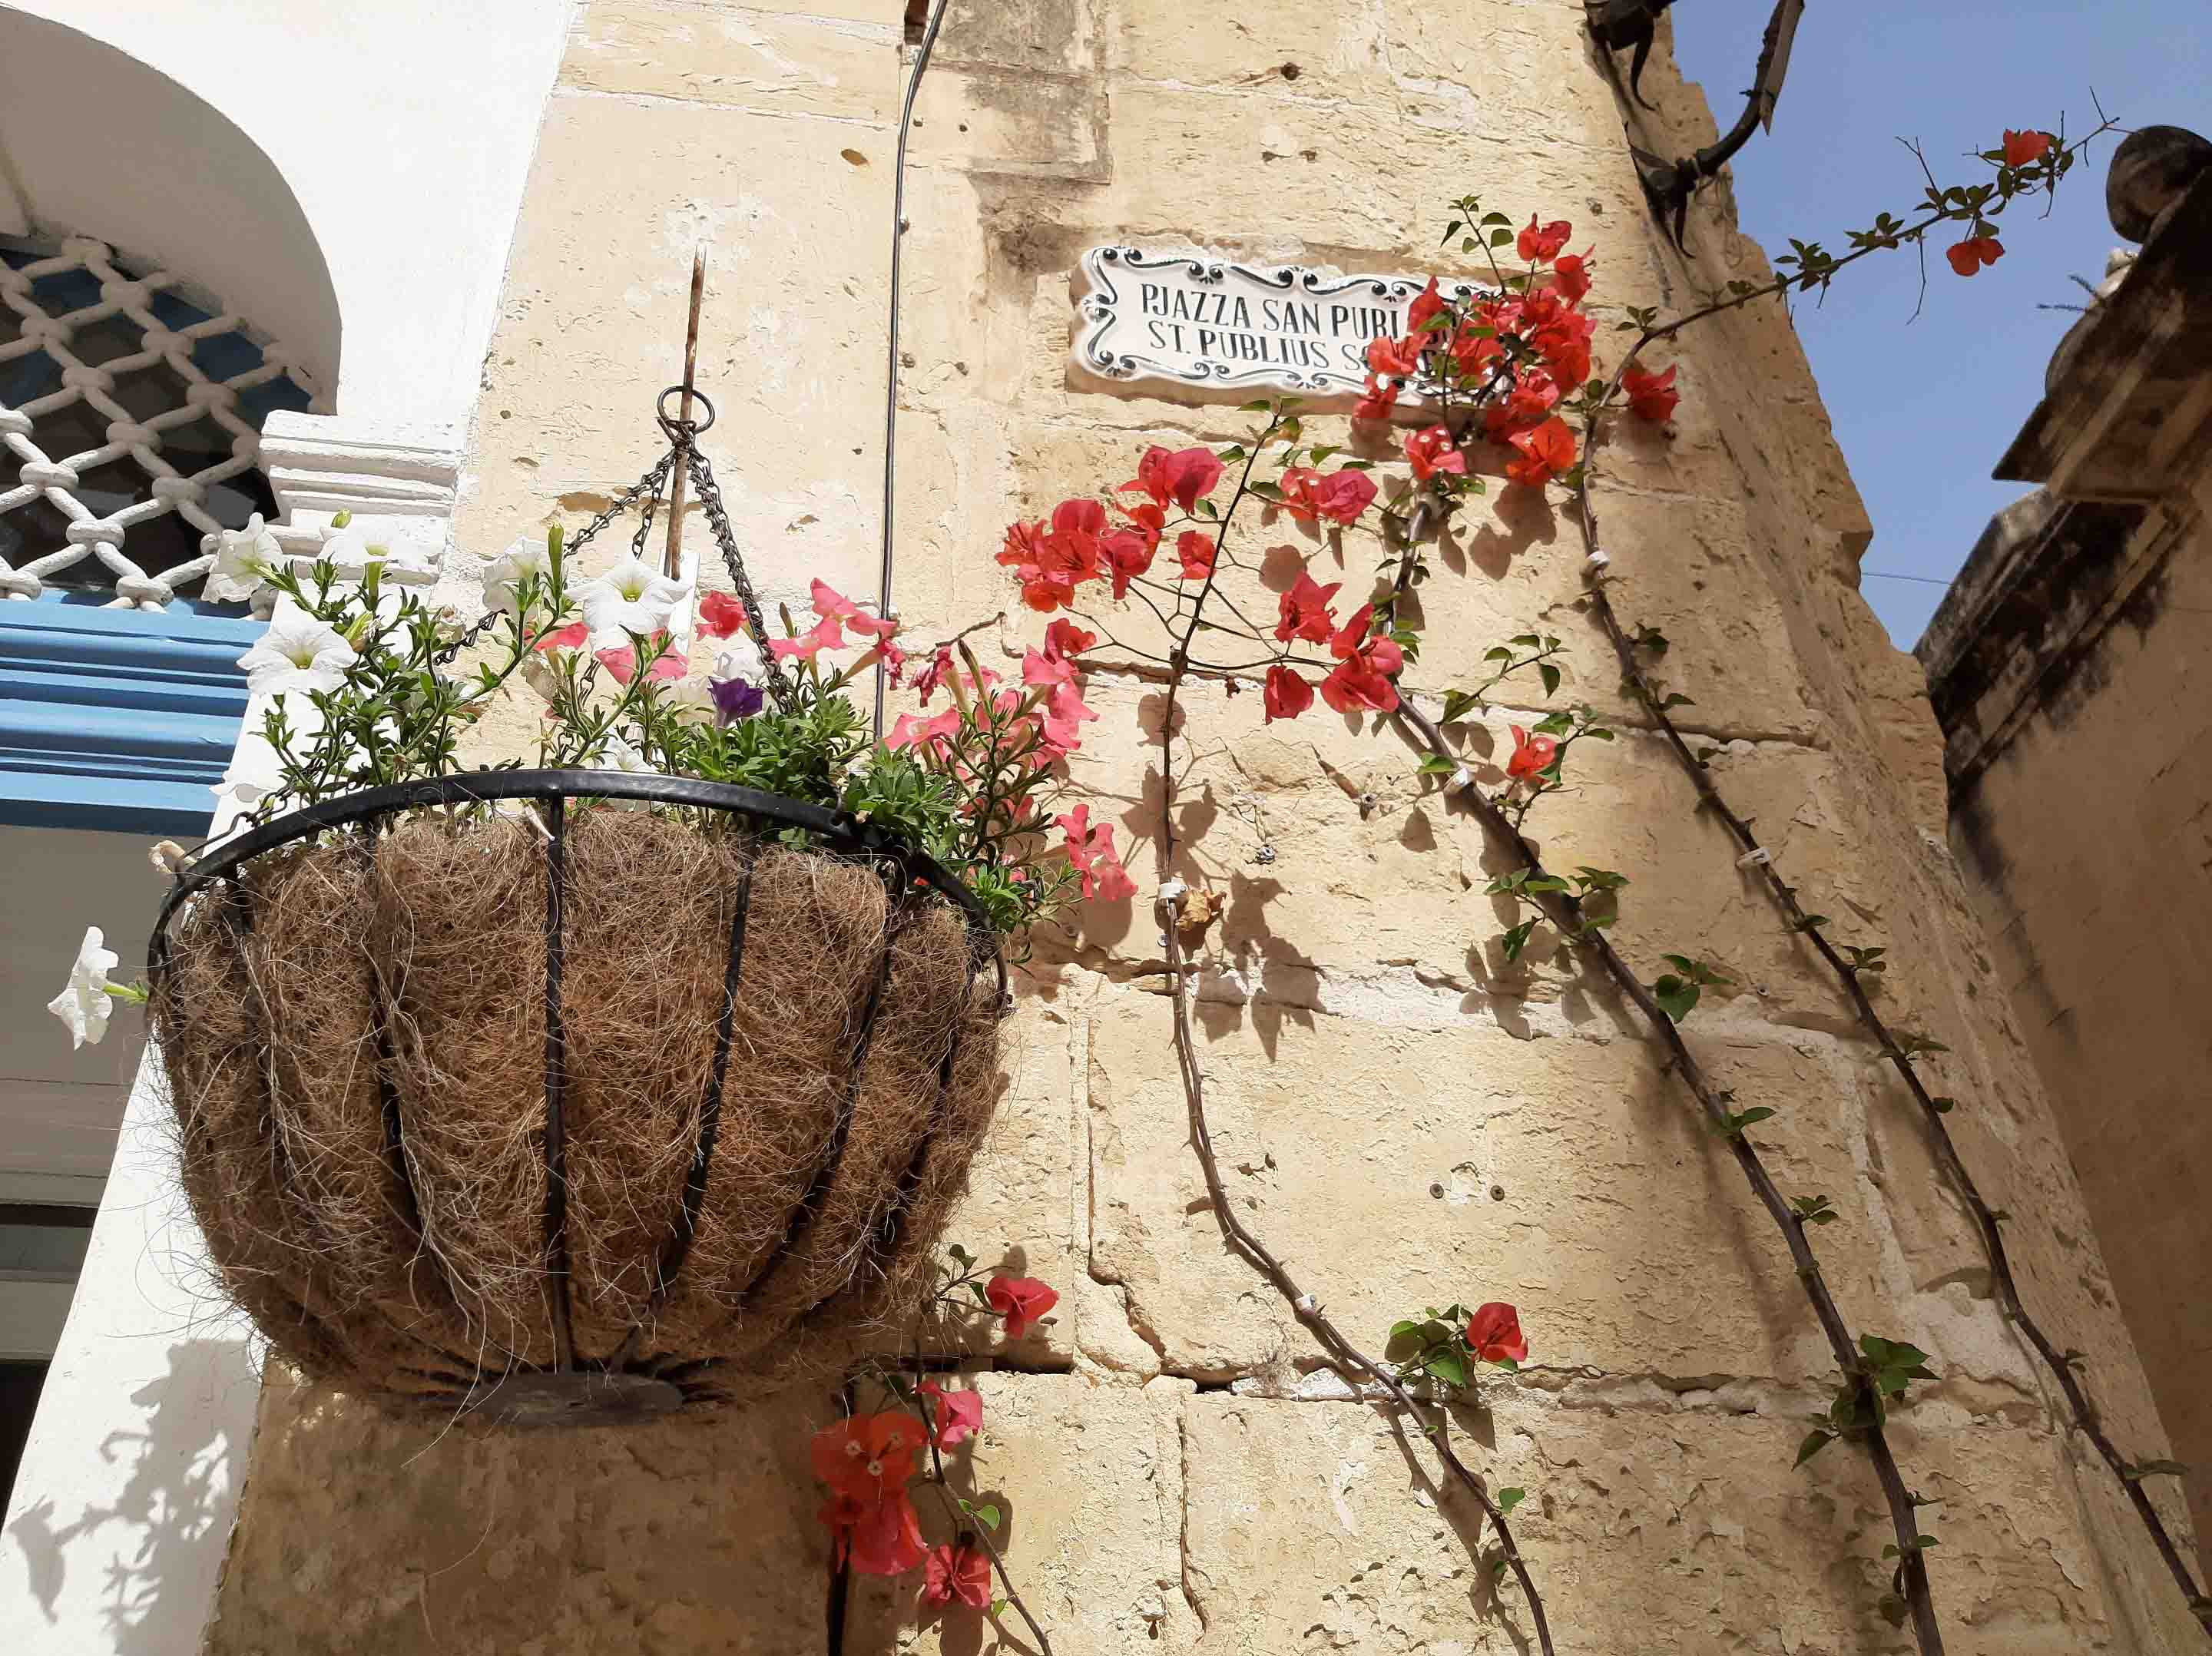 Malta-travel-Mdina-Glimpses-of-the-World